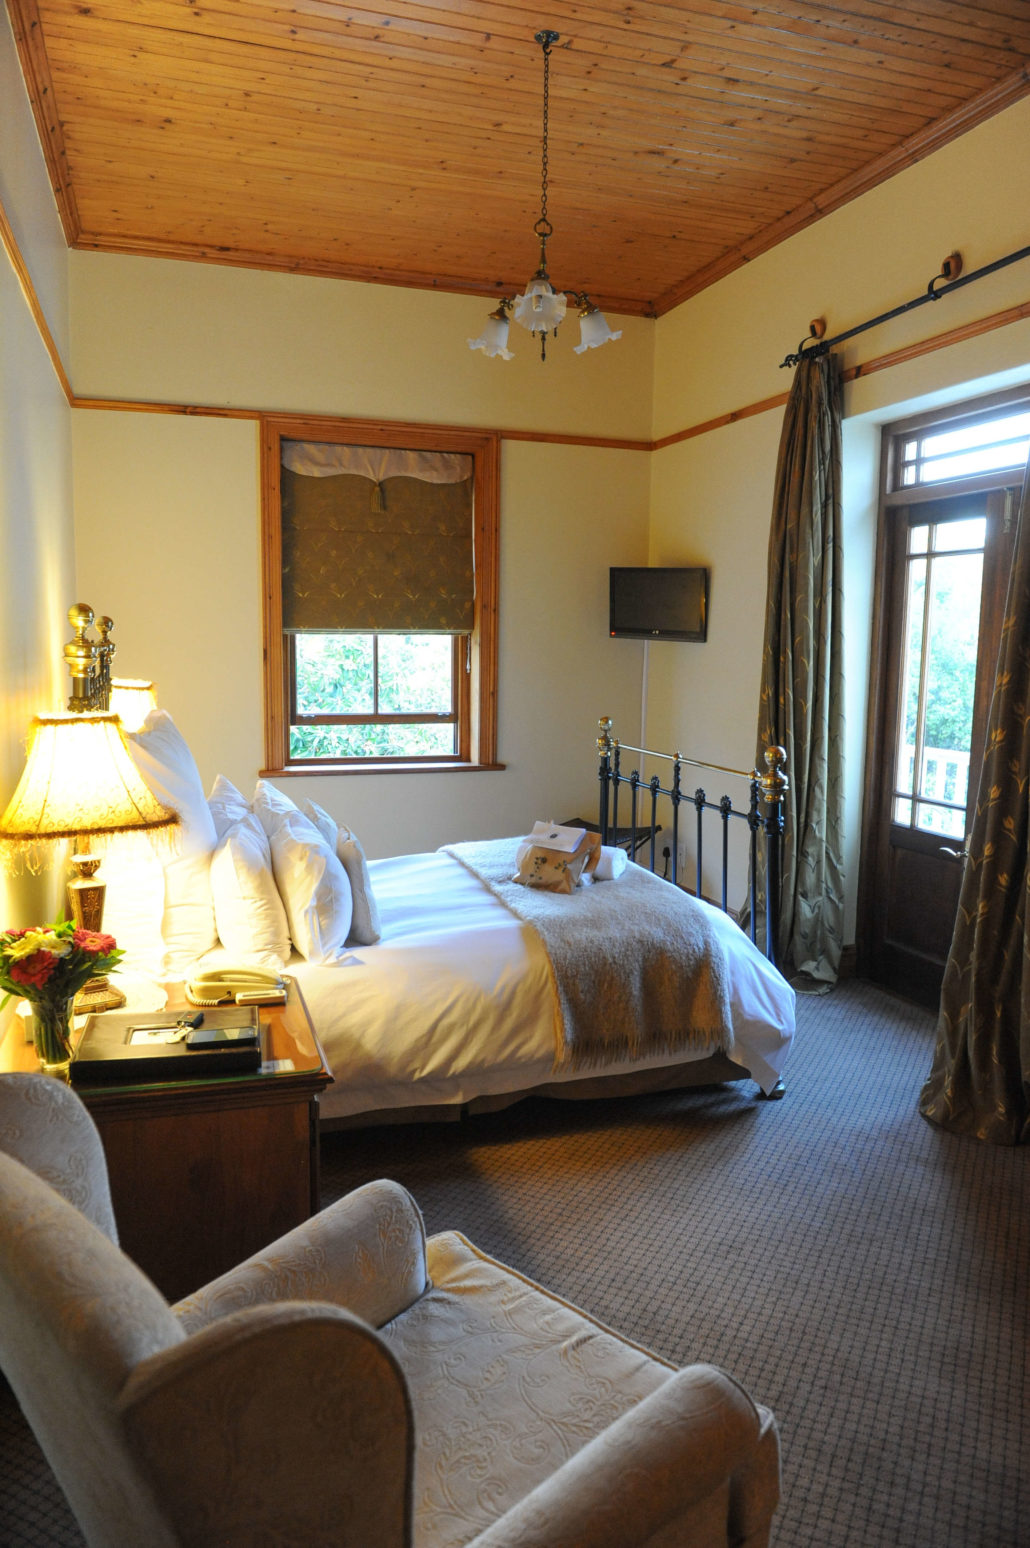 My room at the Evergreen Manor and Spa in Stellenbosch